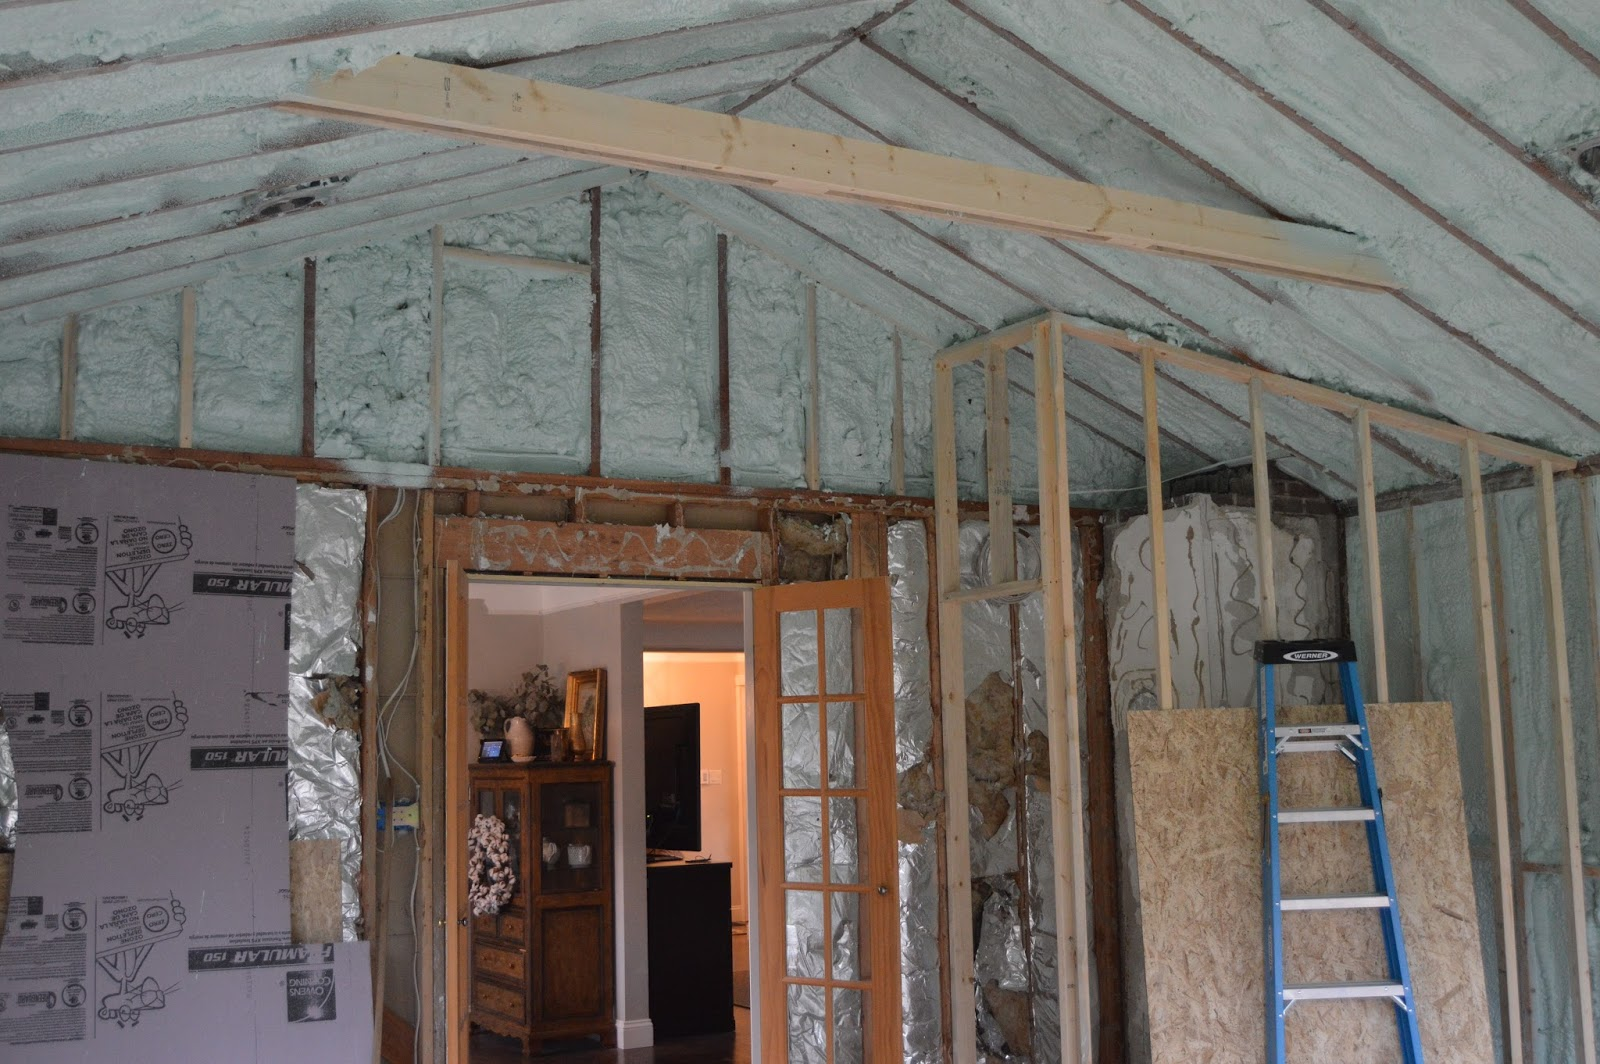 House dash Home: Insulating With Spray Foam